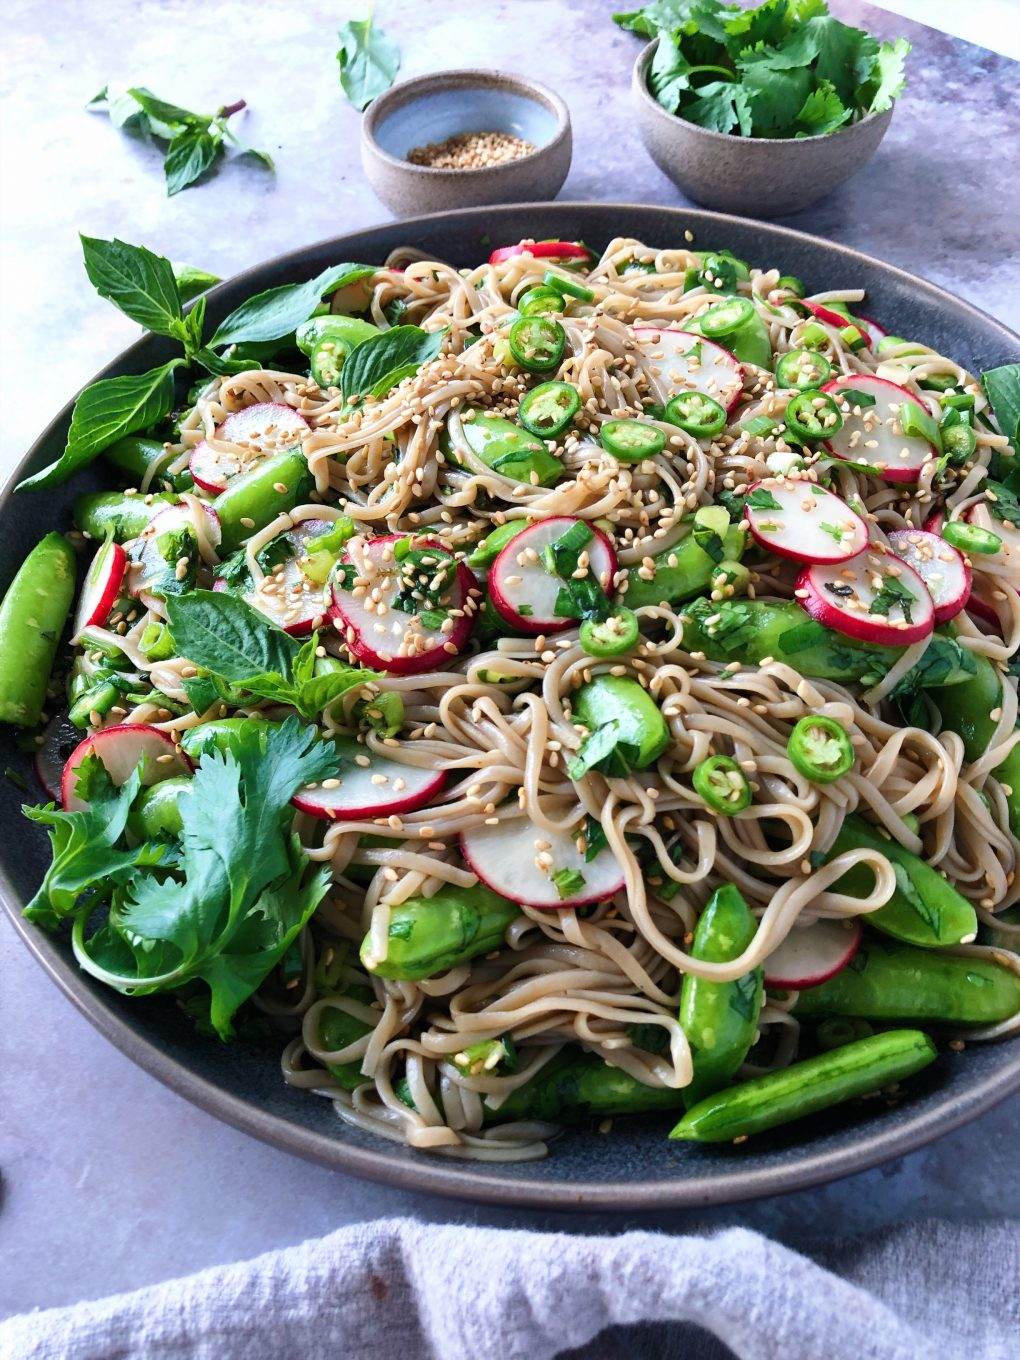 Side angle shot of vegan soba noodle salad with vegetables and herbs - sugar snap peas, radishes, chilies, and sesame seeds on a moody grey background